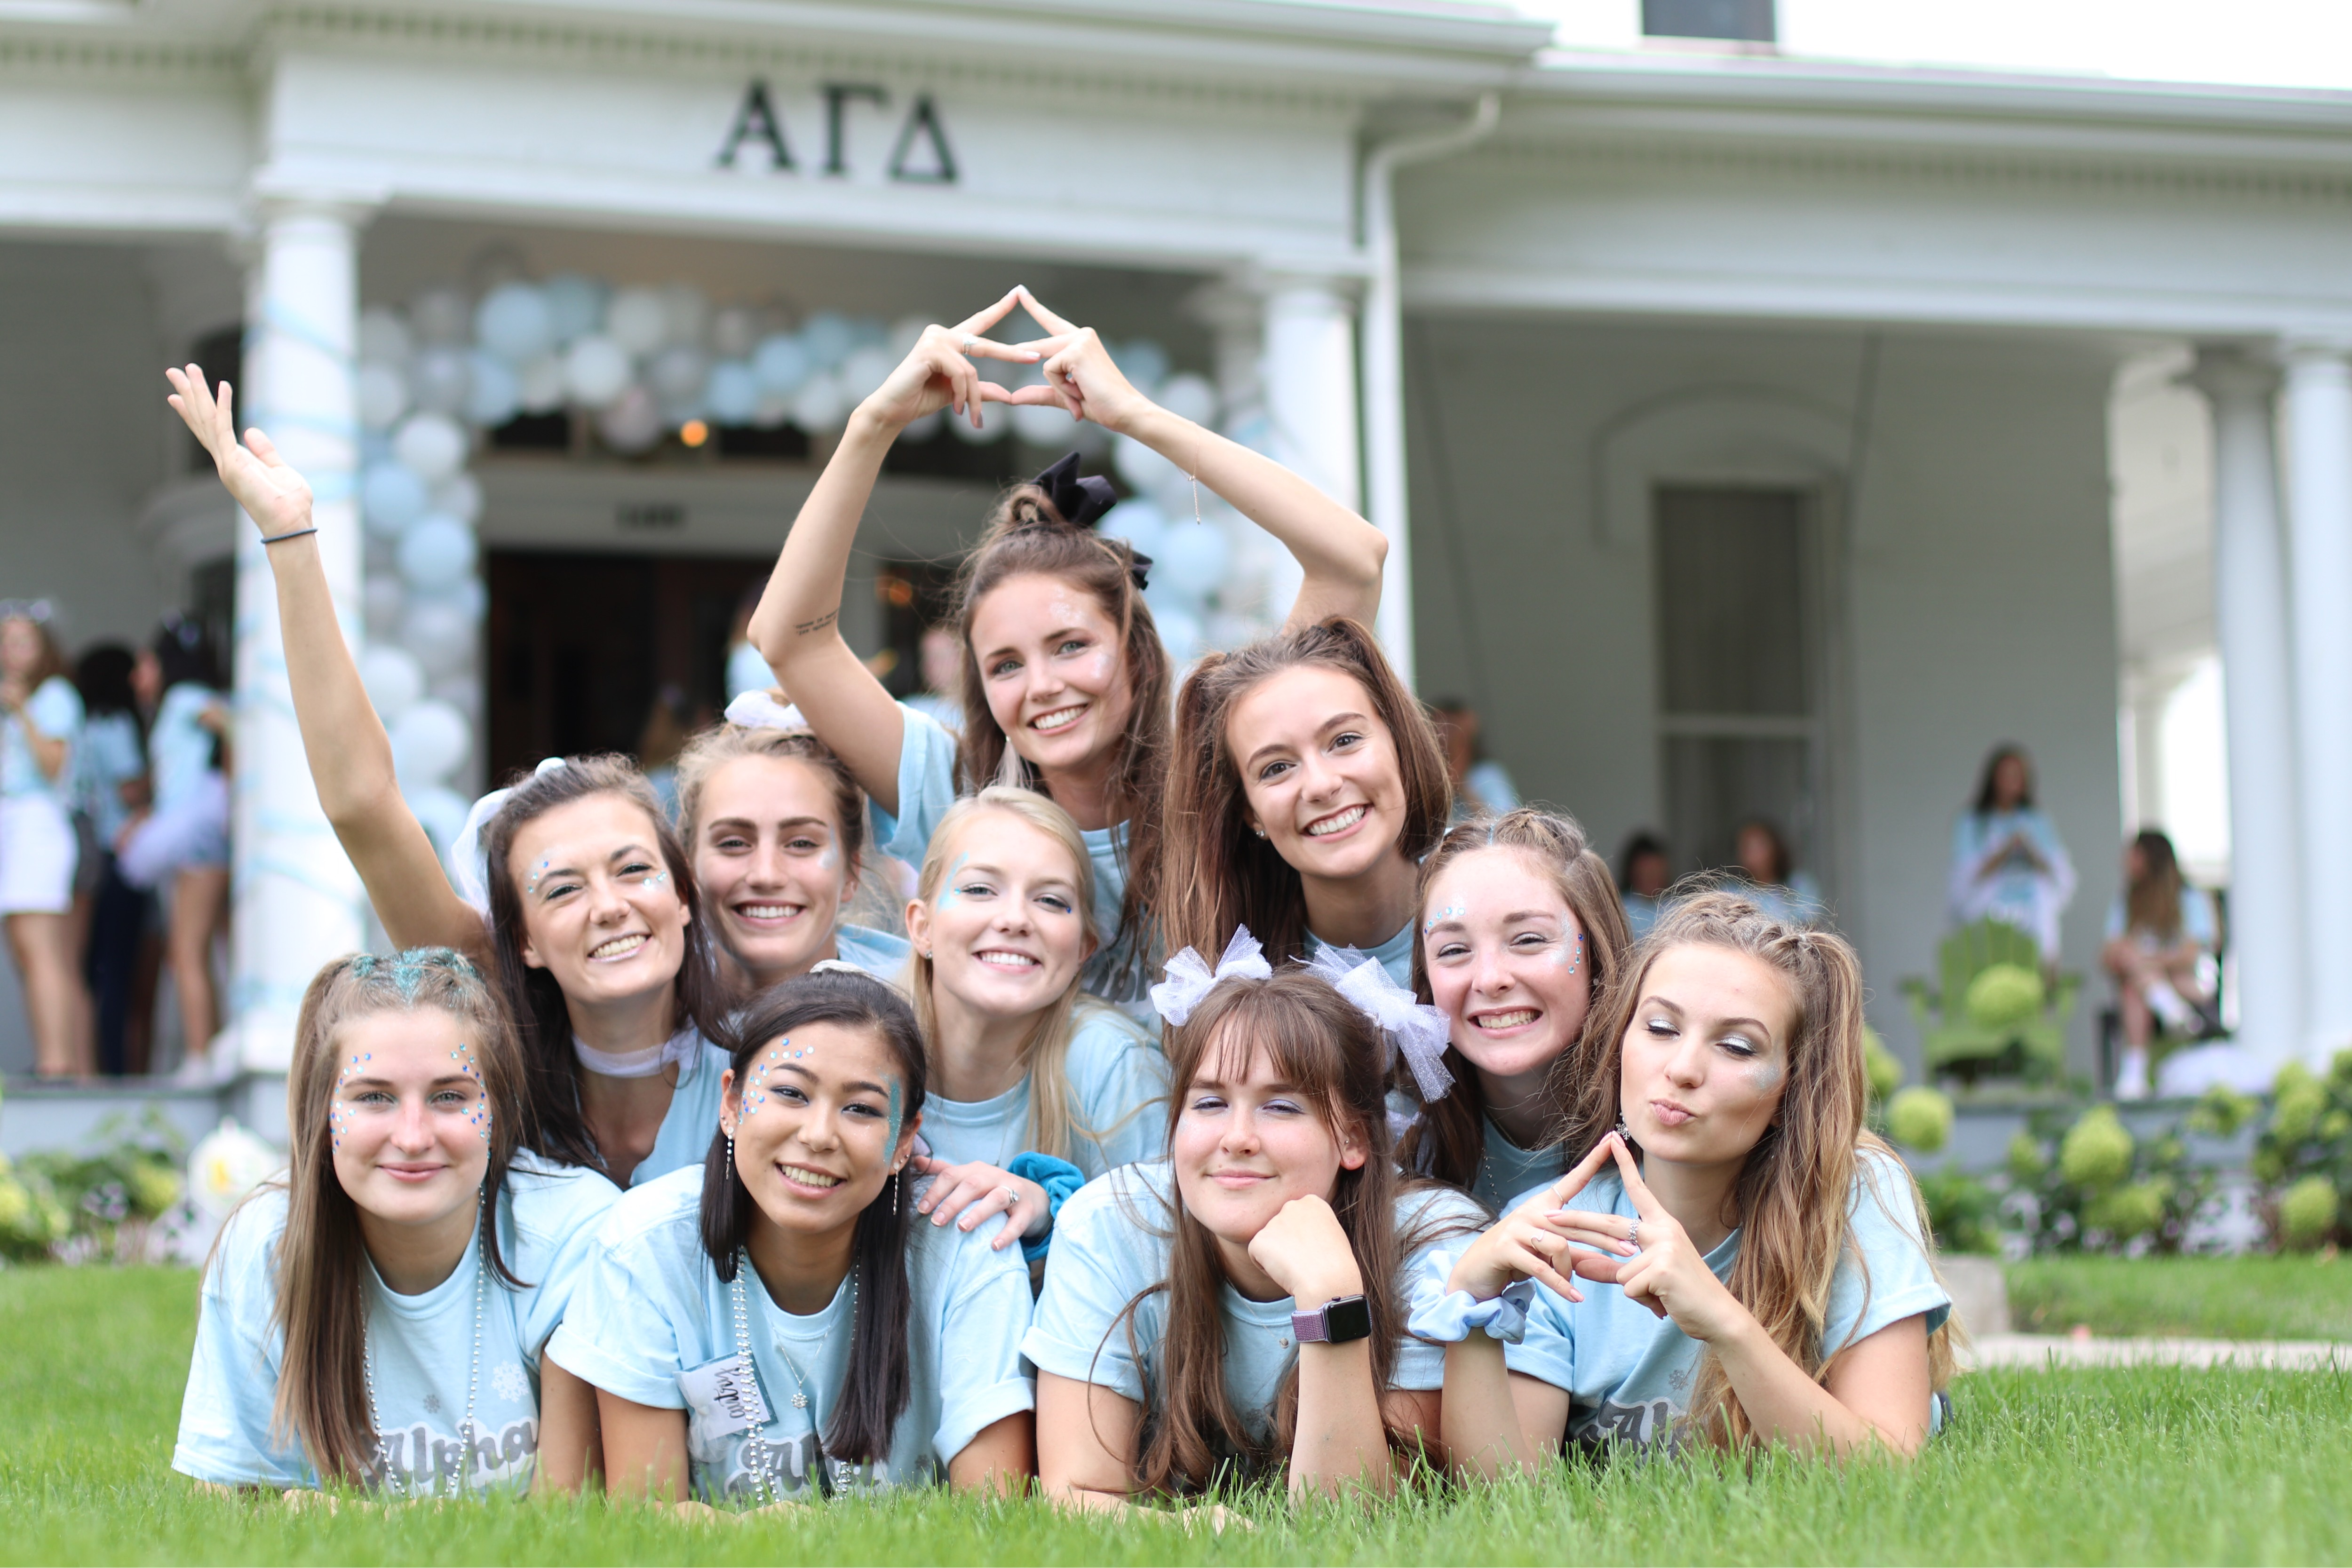 Snow Place Like AGD -- Bid Day 2019